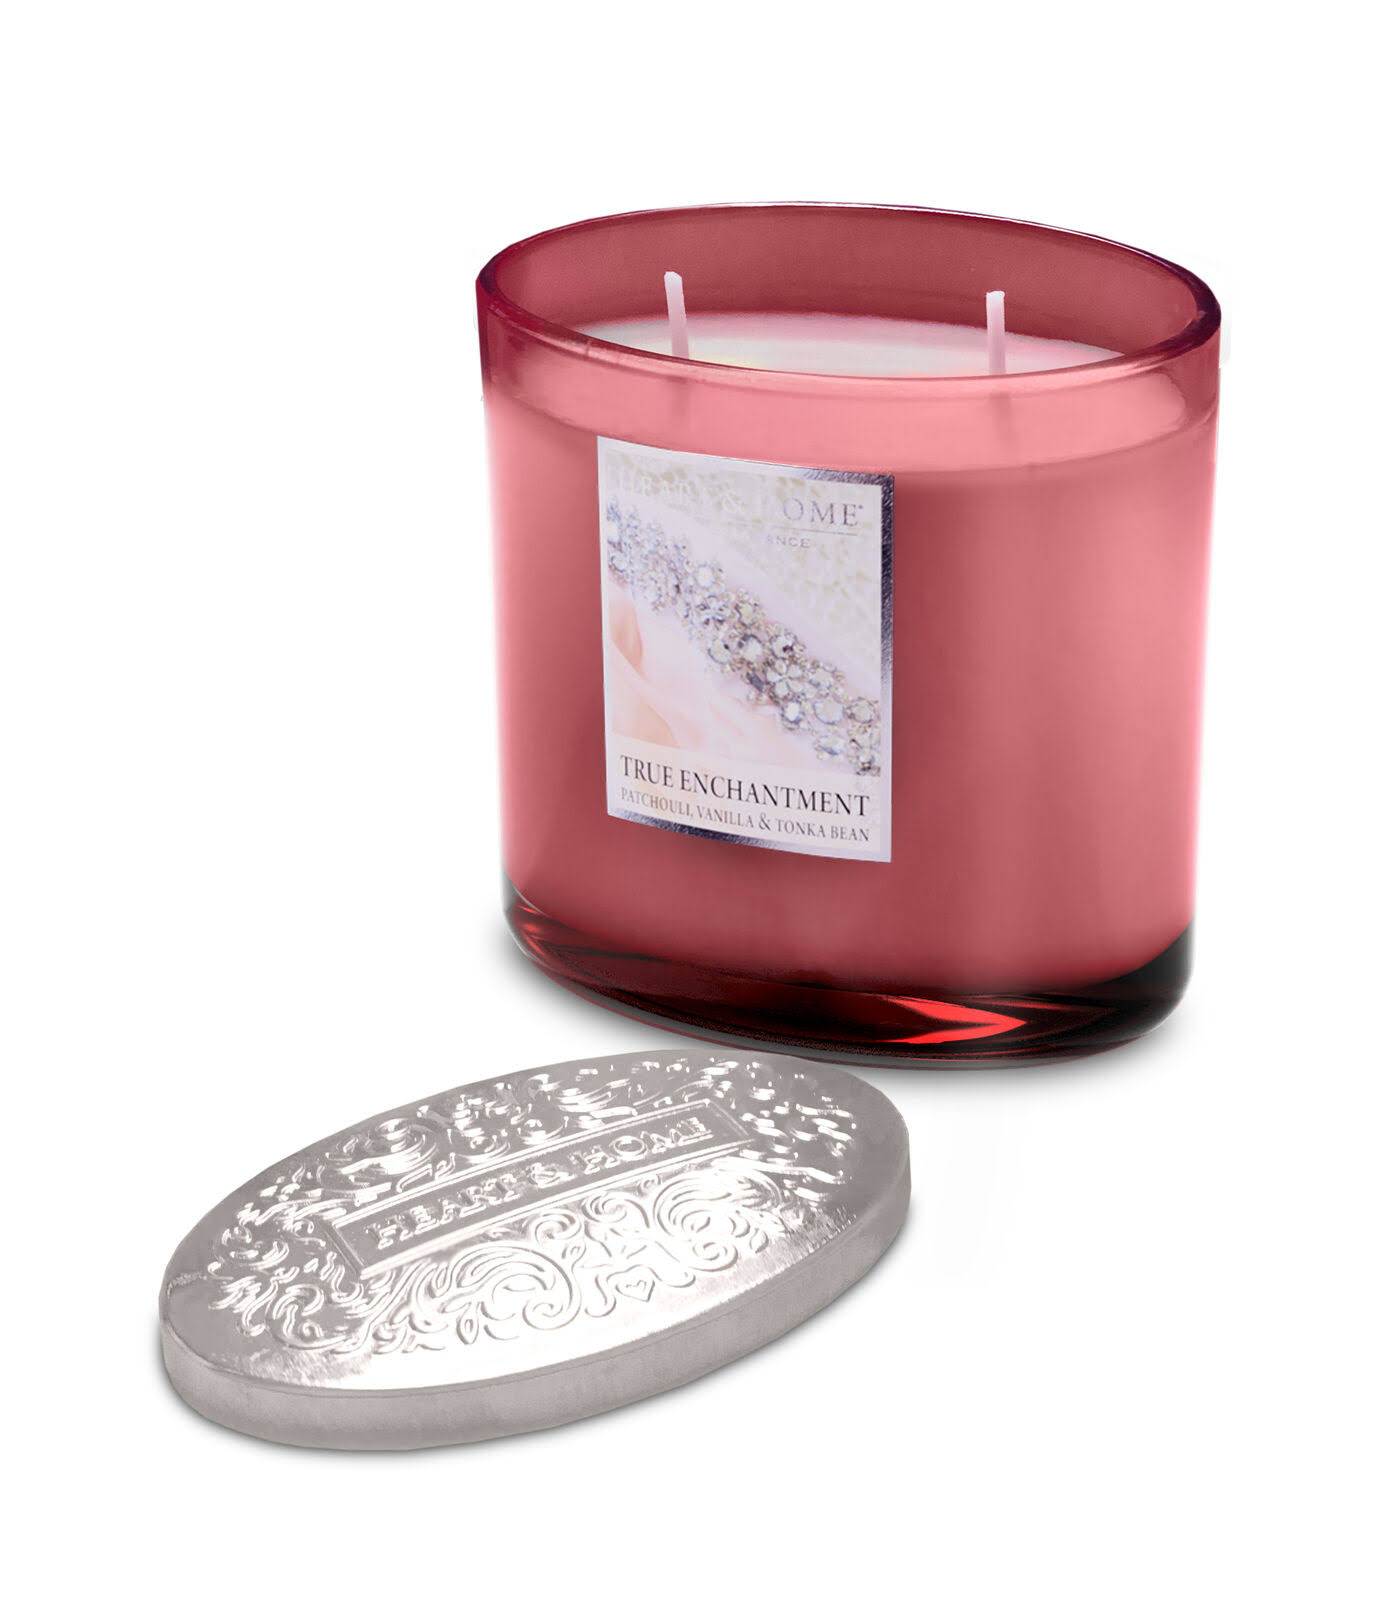 Heart & Home Ellipse Candle, 2 Wick - True Enchantment